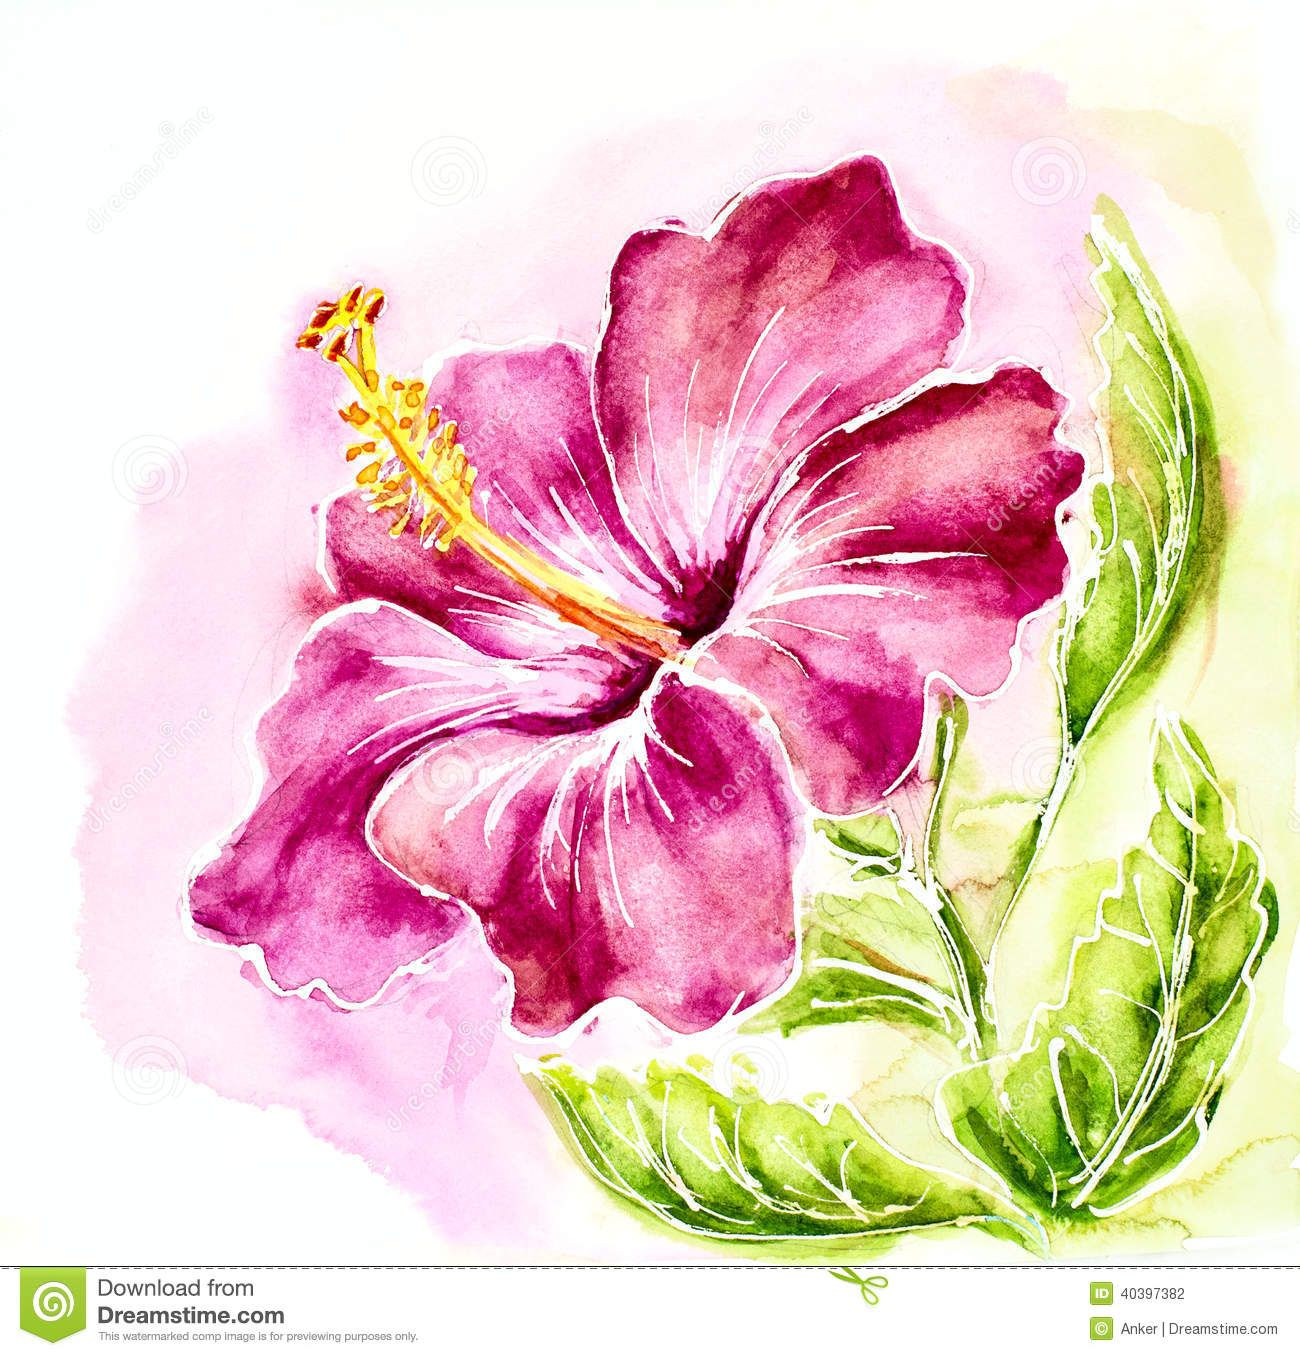 Free illustration watercolor pigment color free image - Drawings